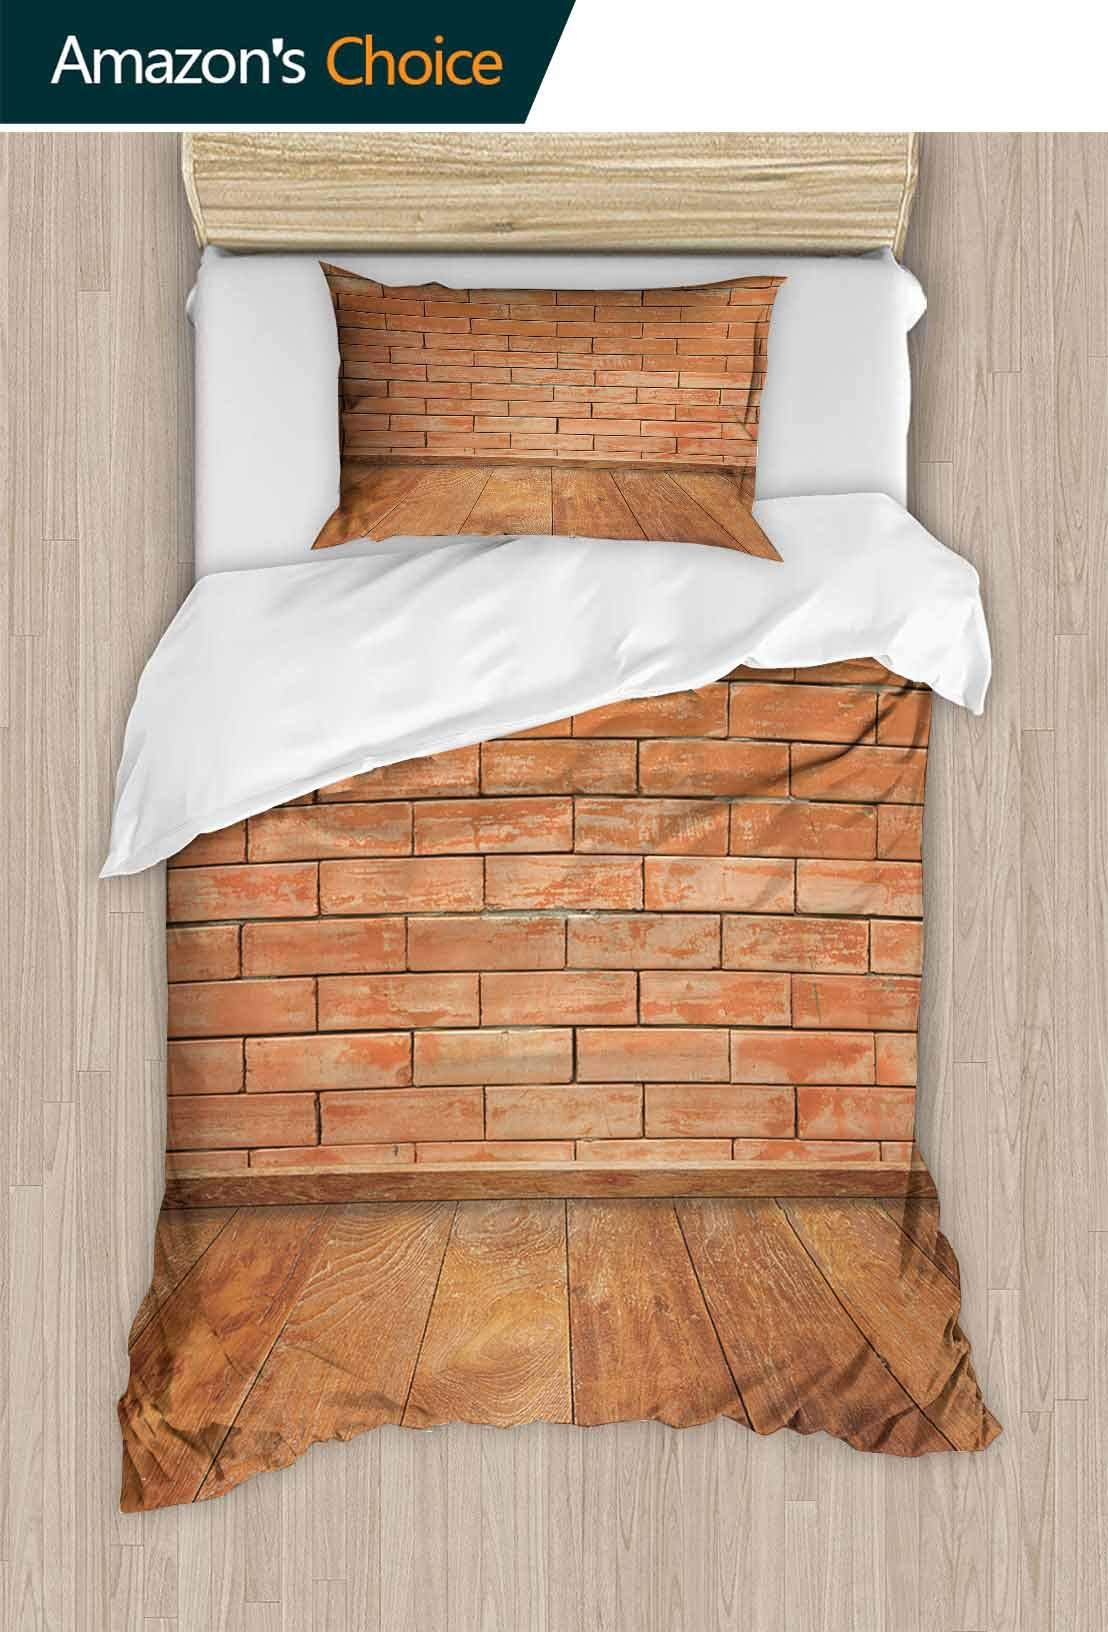 PRUNUSHOME Polyester Bedding Concrete Brick Walls and Wood Floor for Text and Background.Copy Space Ultra Soft Hypoallergenic Full